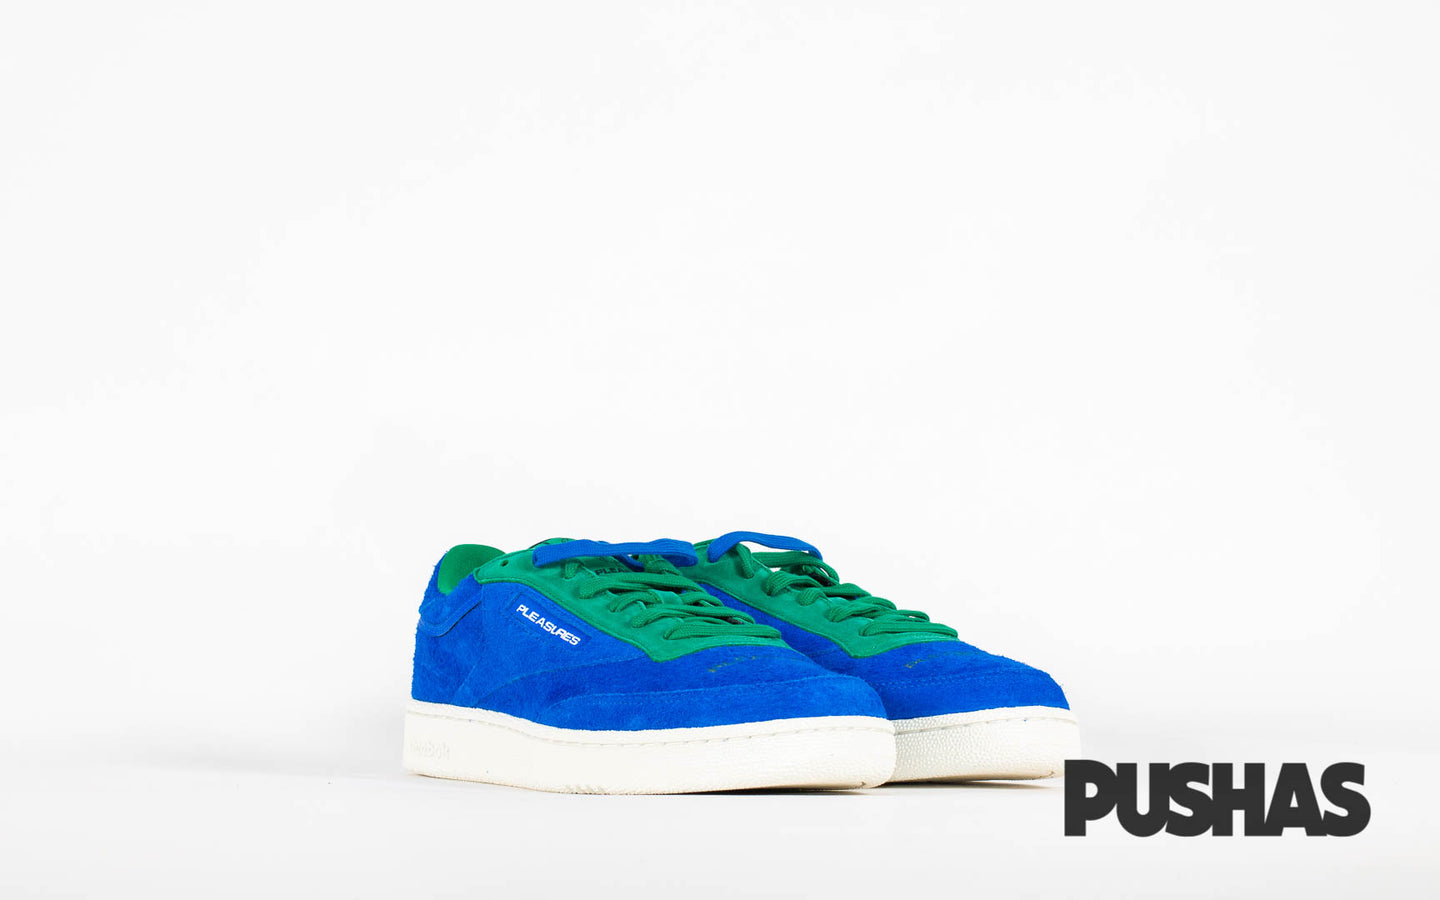 pushas-Reebok -Pleasures-Club-C-85